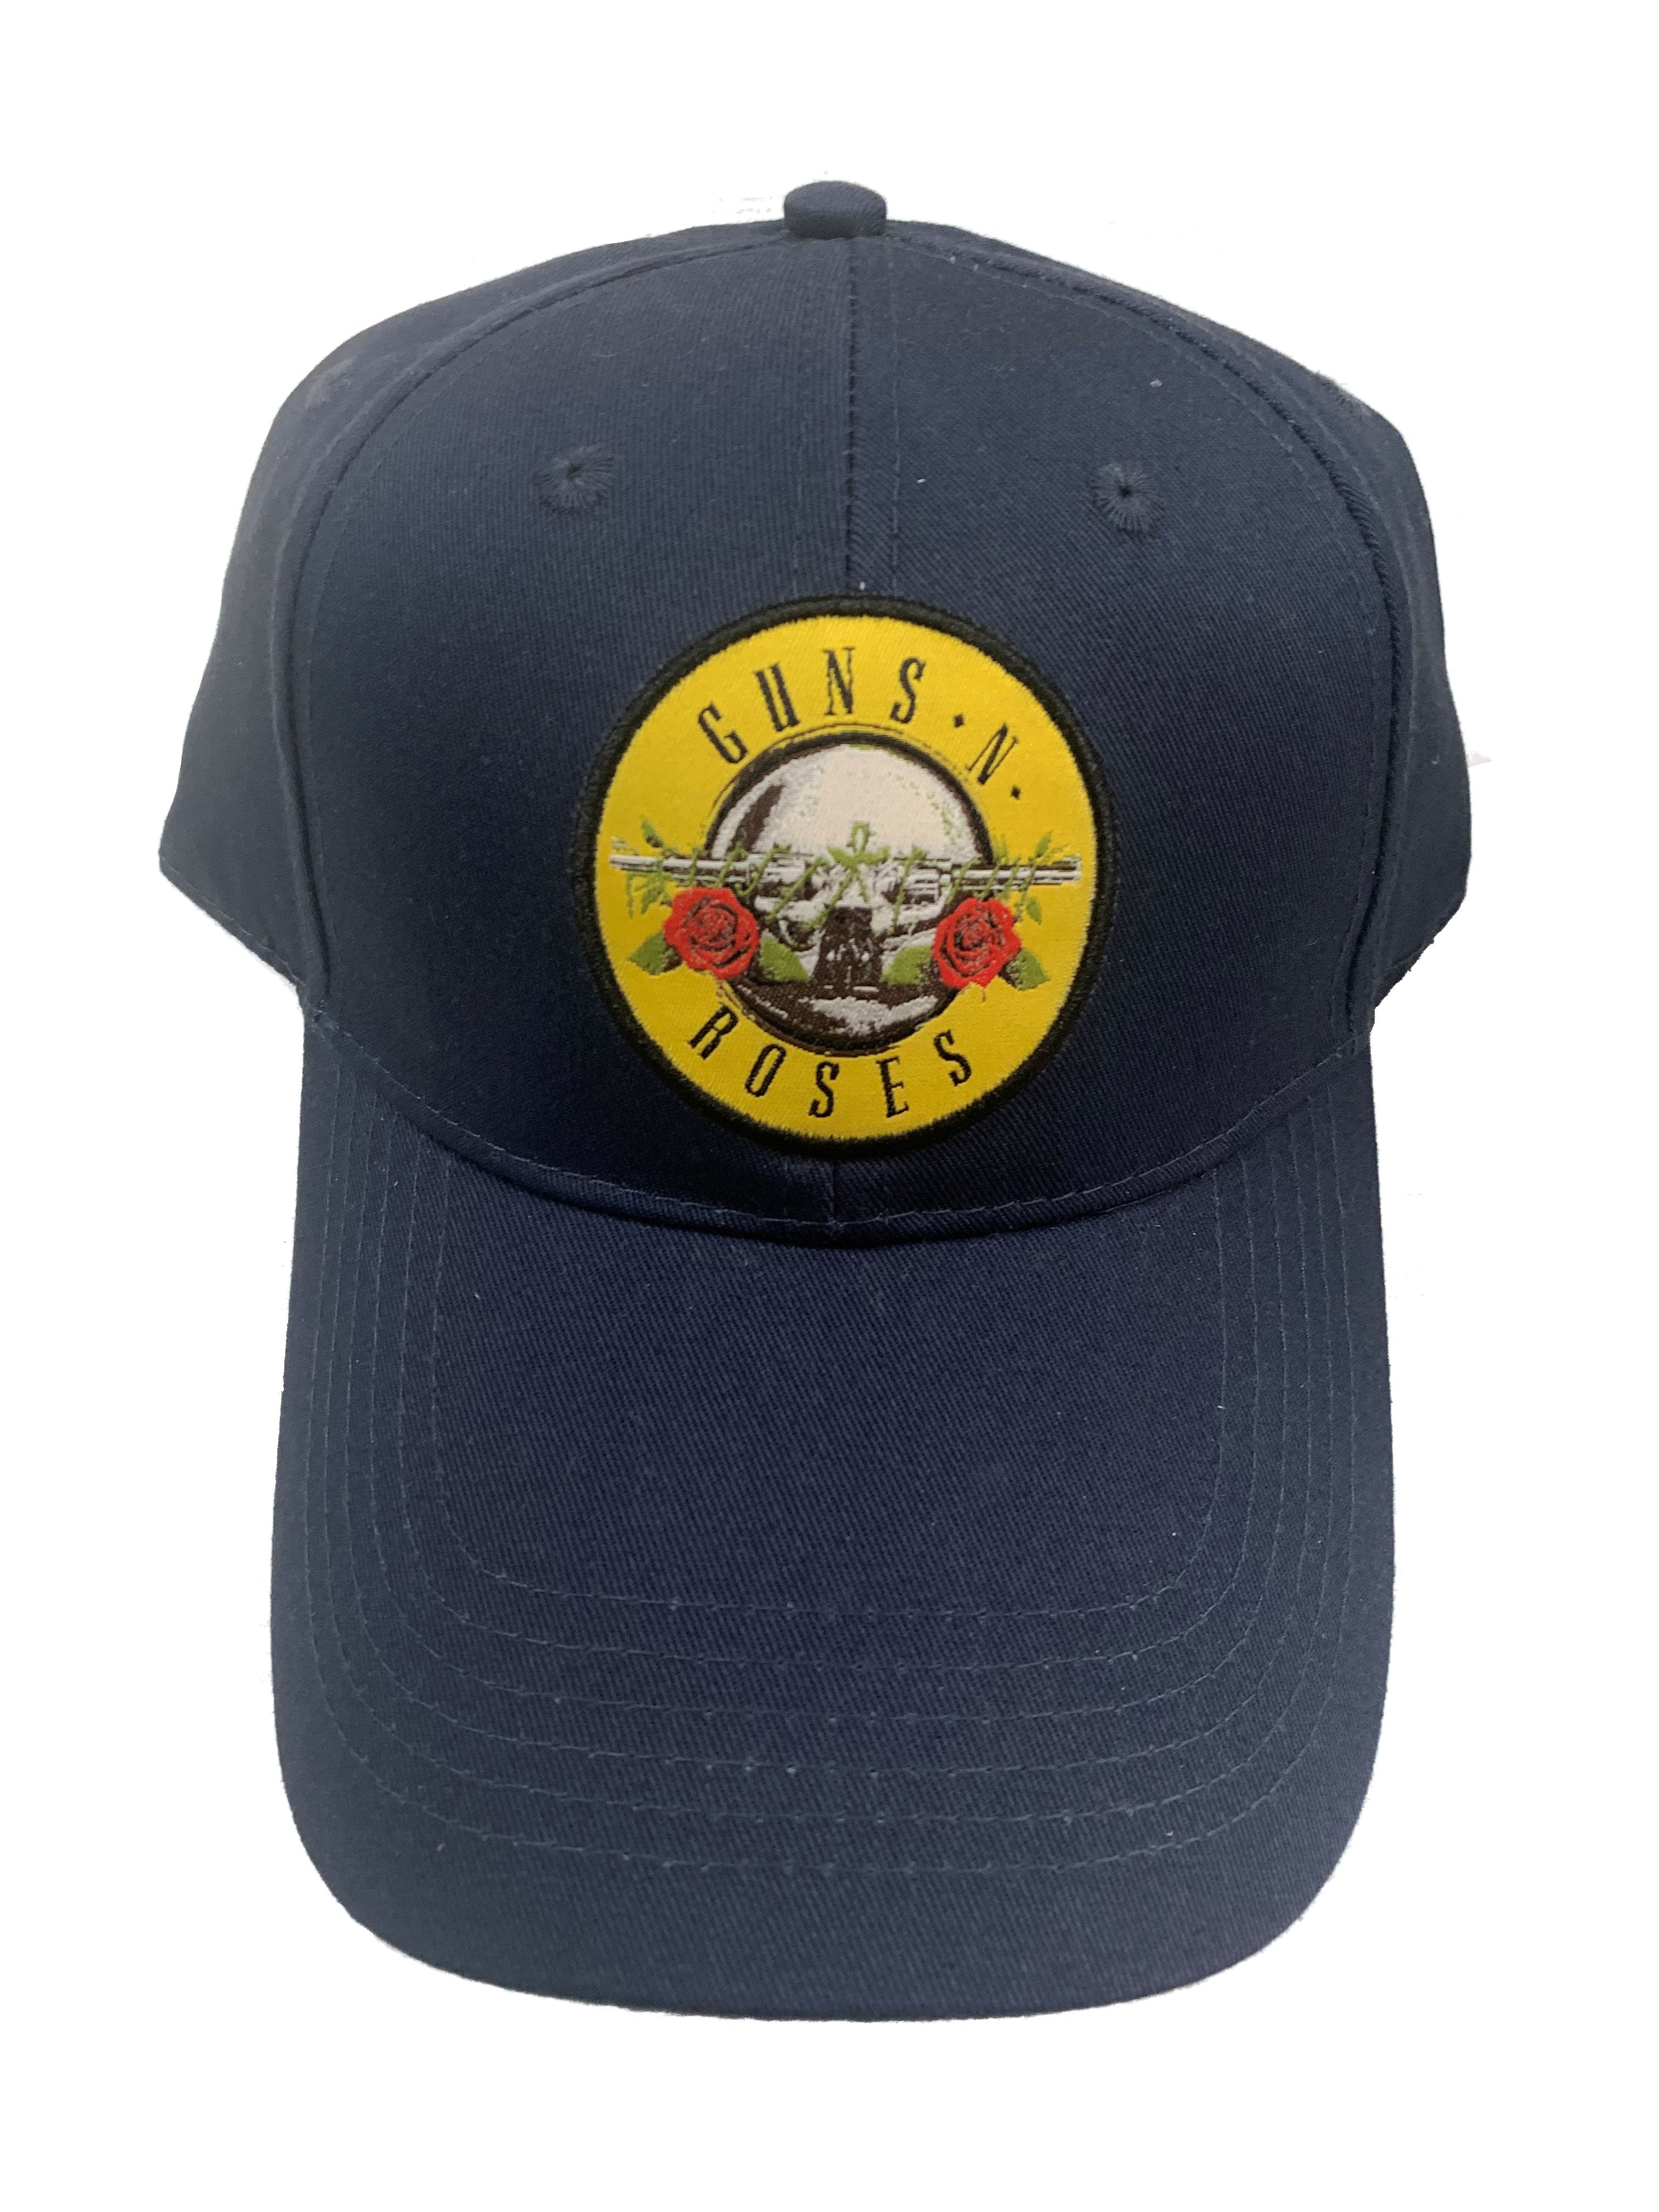 Guns N Roses Drum Logo Navy Official Embroidered Peak Cap Adjustable Brand New